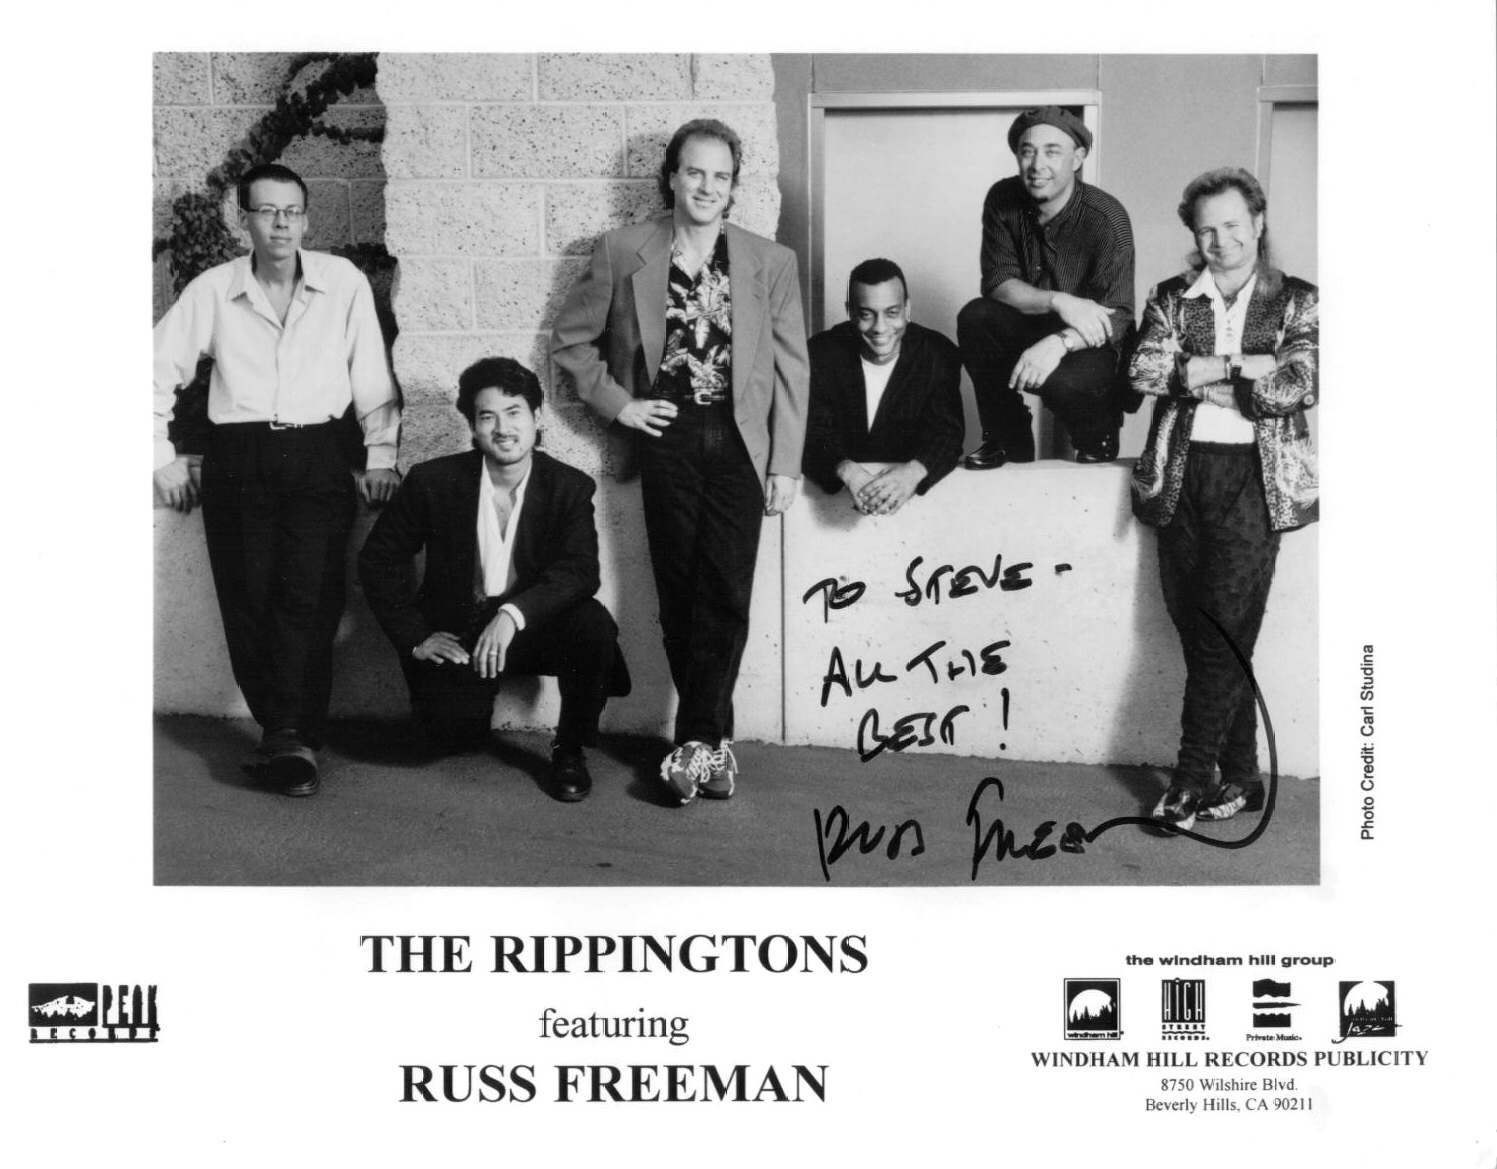 The Rippingtons Clearwater Tickets 2017 The Rippingtons